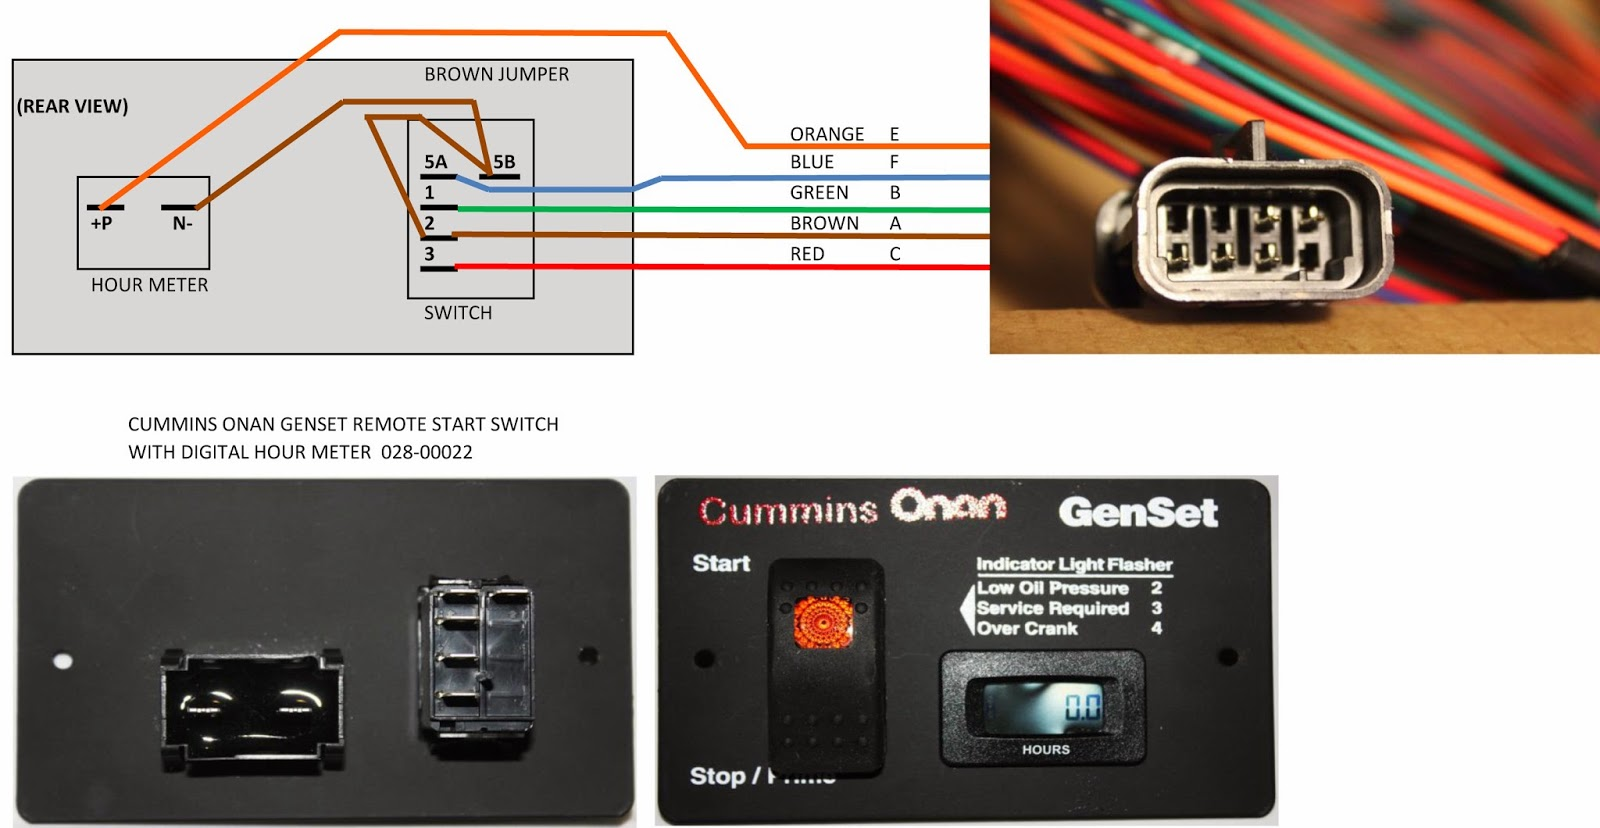 Onan Microlite 2800 Wiring Diagram 34 Images Generator Furthermore On Sel Marquis 4000 The Best Remote Switch Wiringresize6652c344